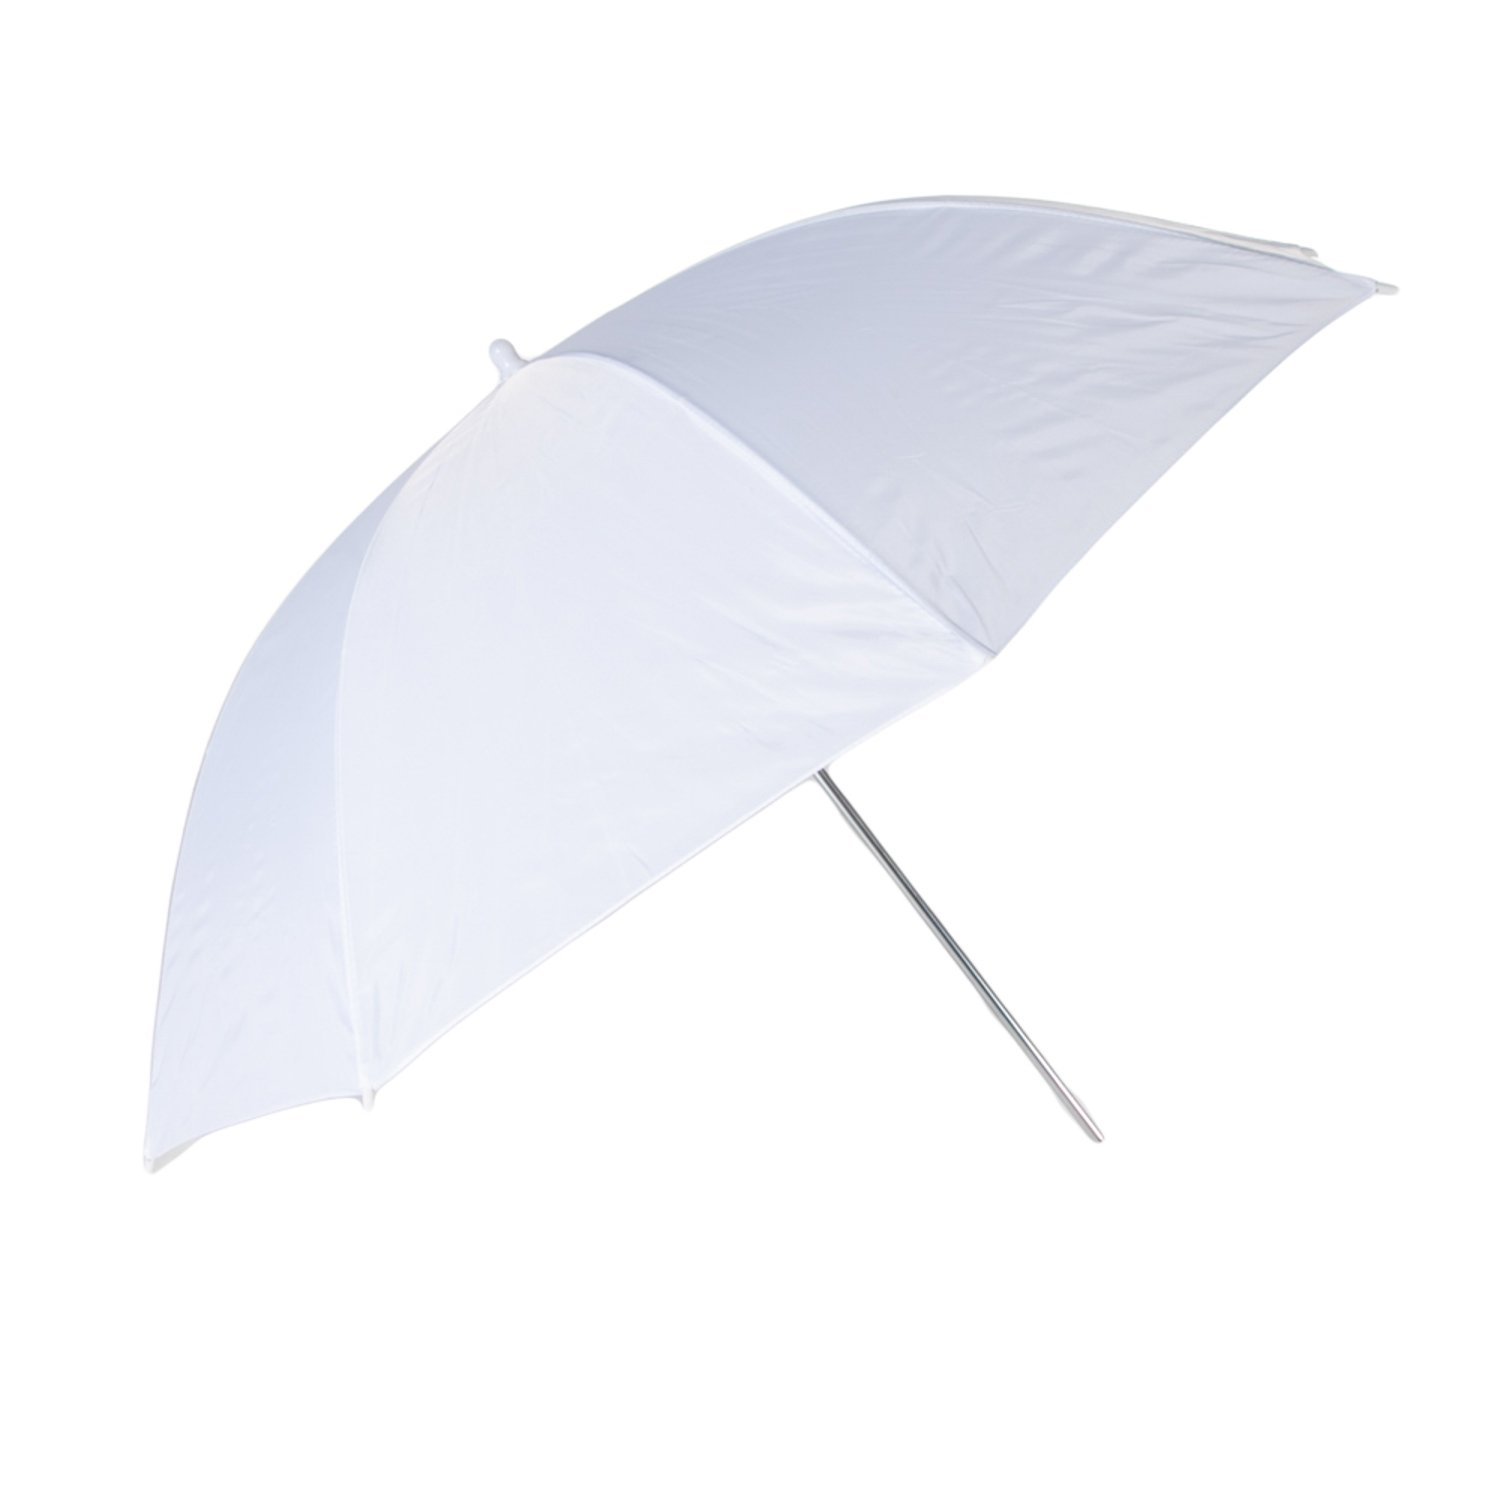 Fovitec - 1x 33 inch Translucent Photography & Video Reflector Umbrella - [Easy Set-up][Lightweight][Cast-Iron][Collapsible][Durable Nylon]